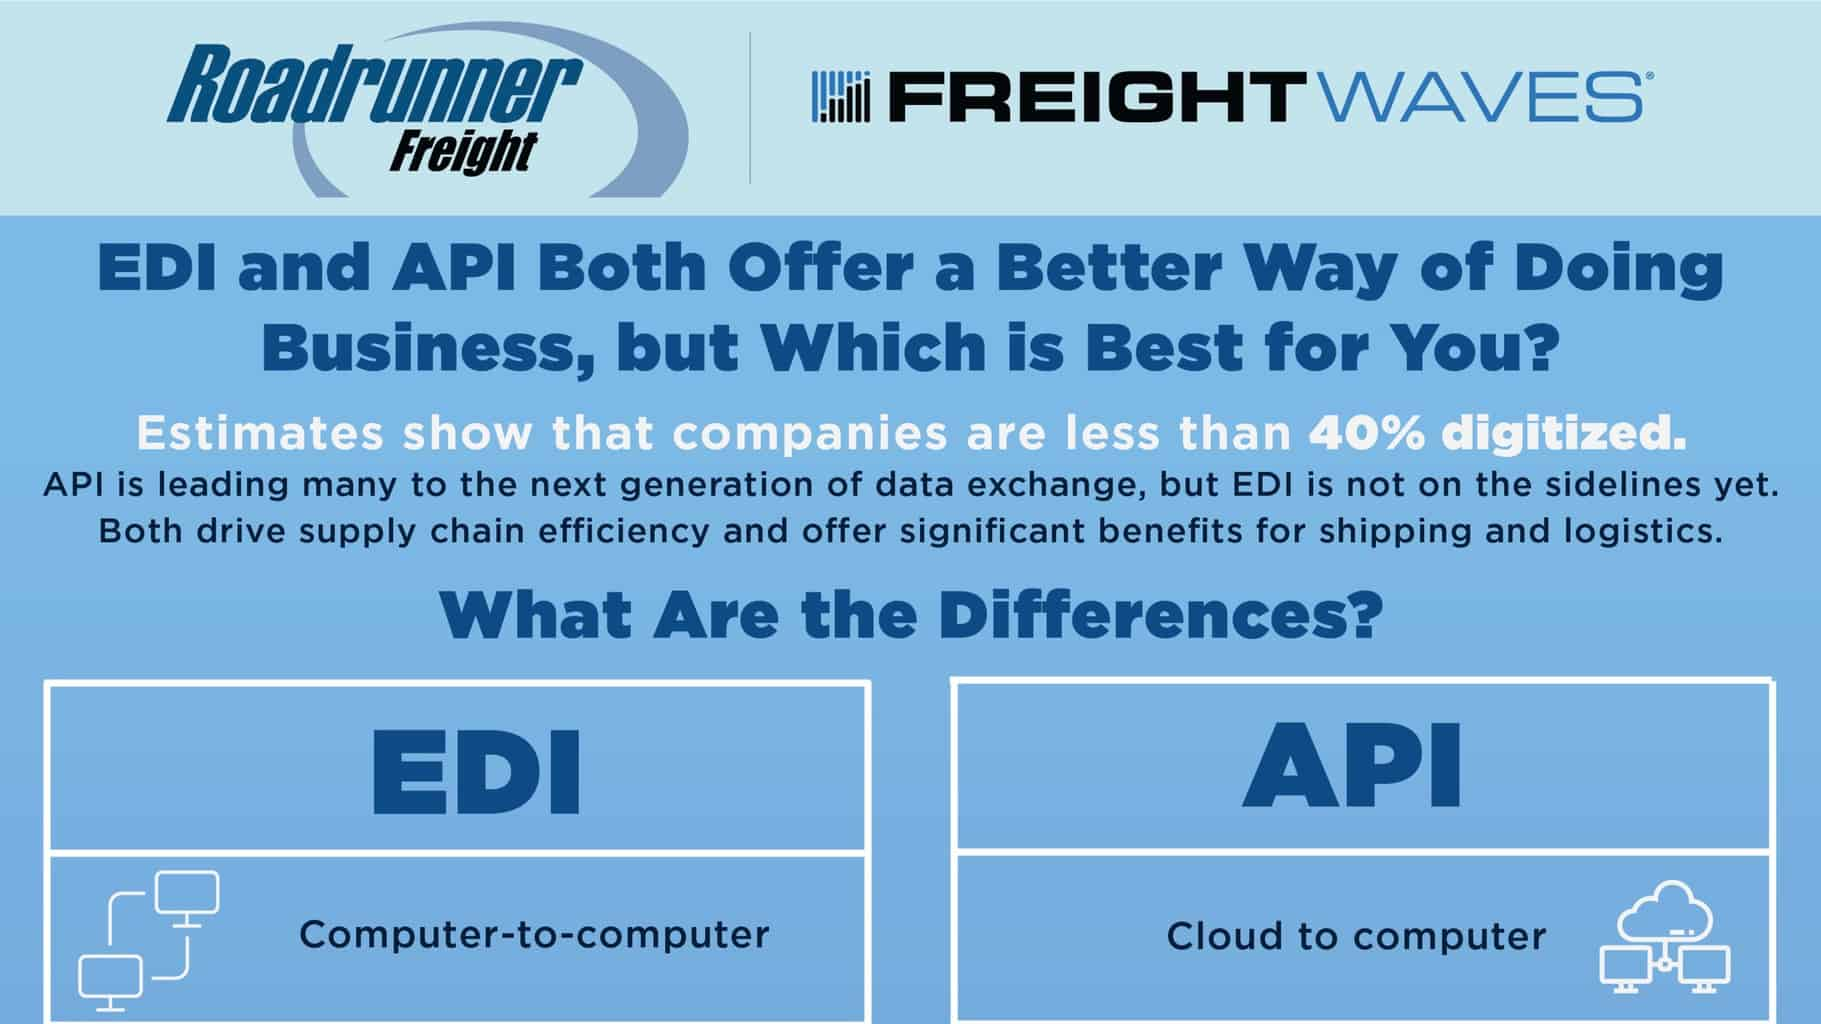 Photo of EDI and API are great, but which is best for you? (Sponsored by Roadrunner Freight)